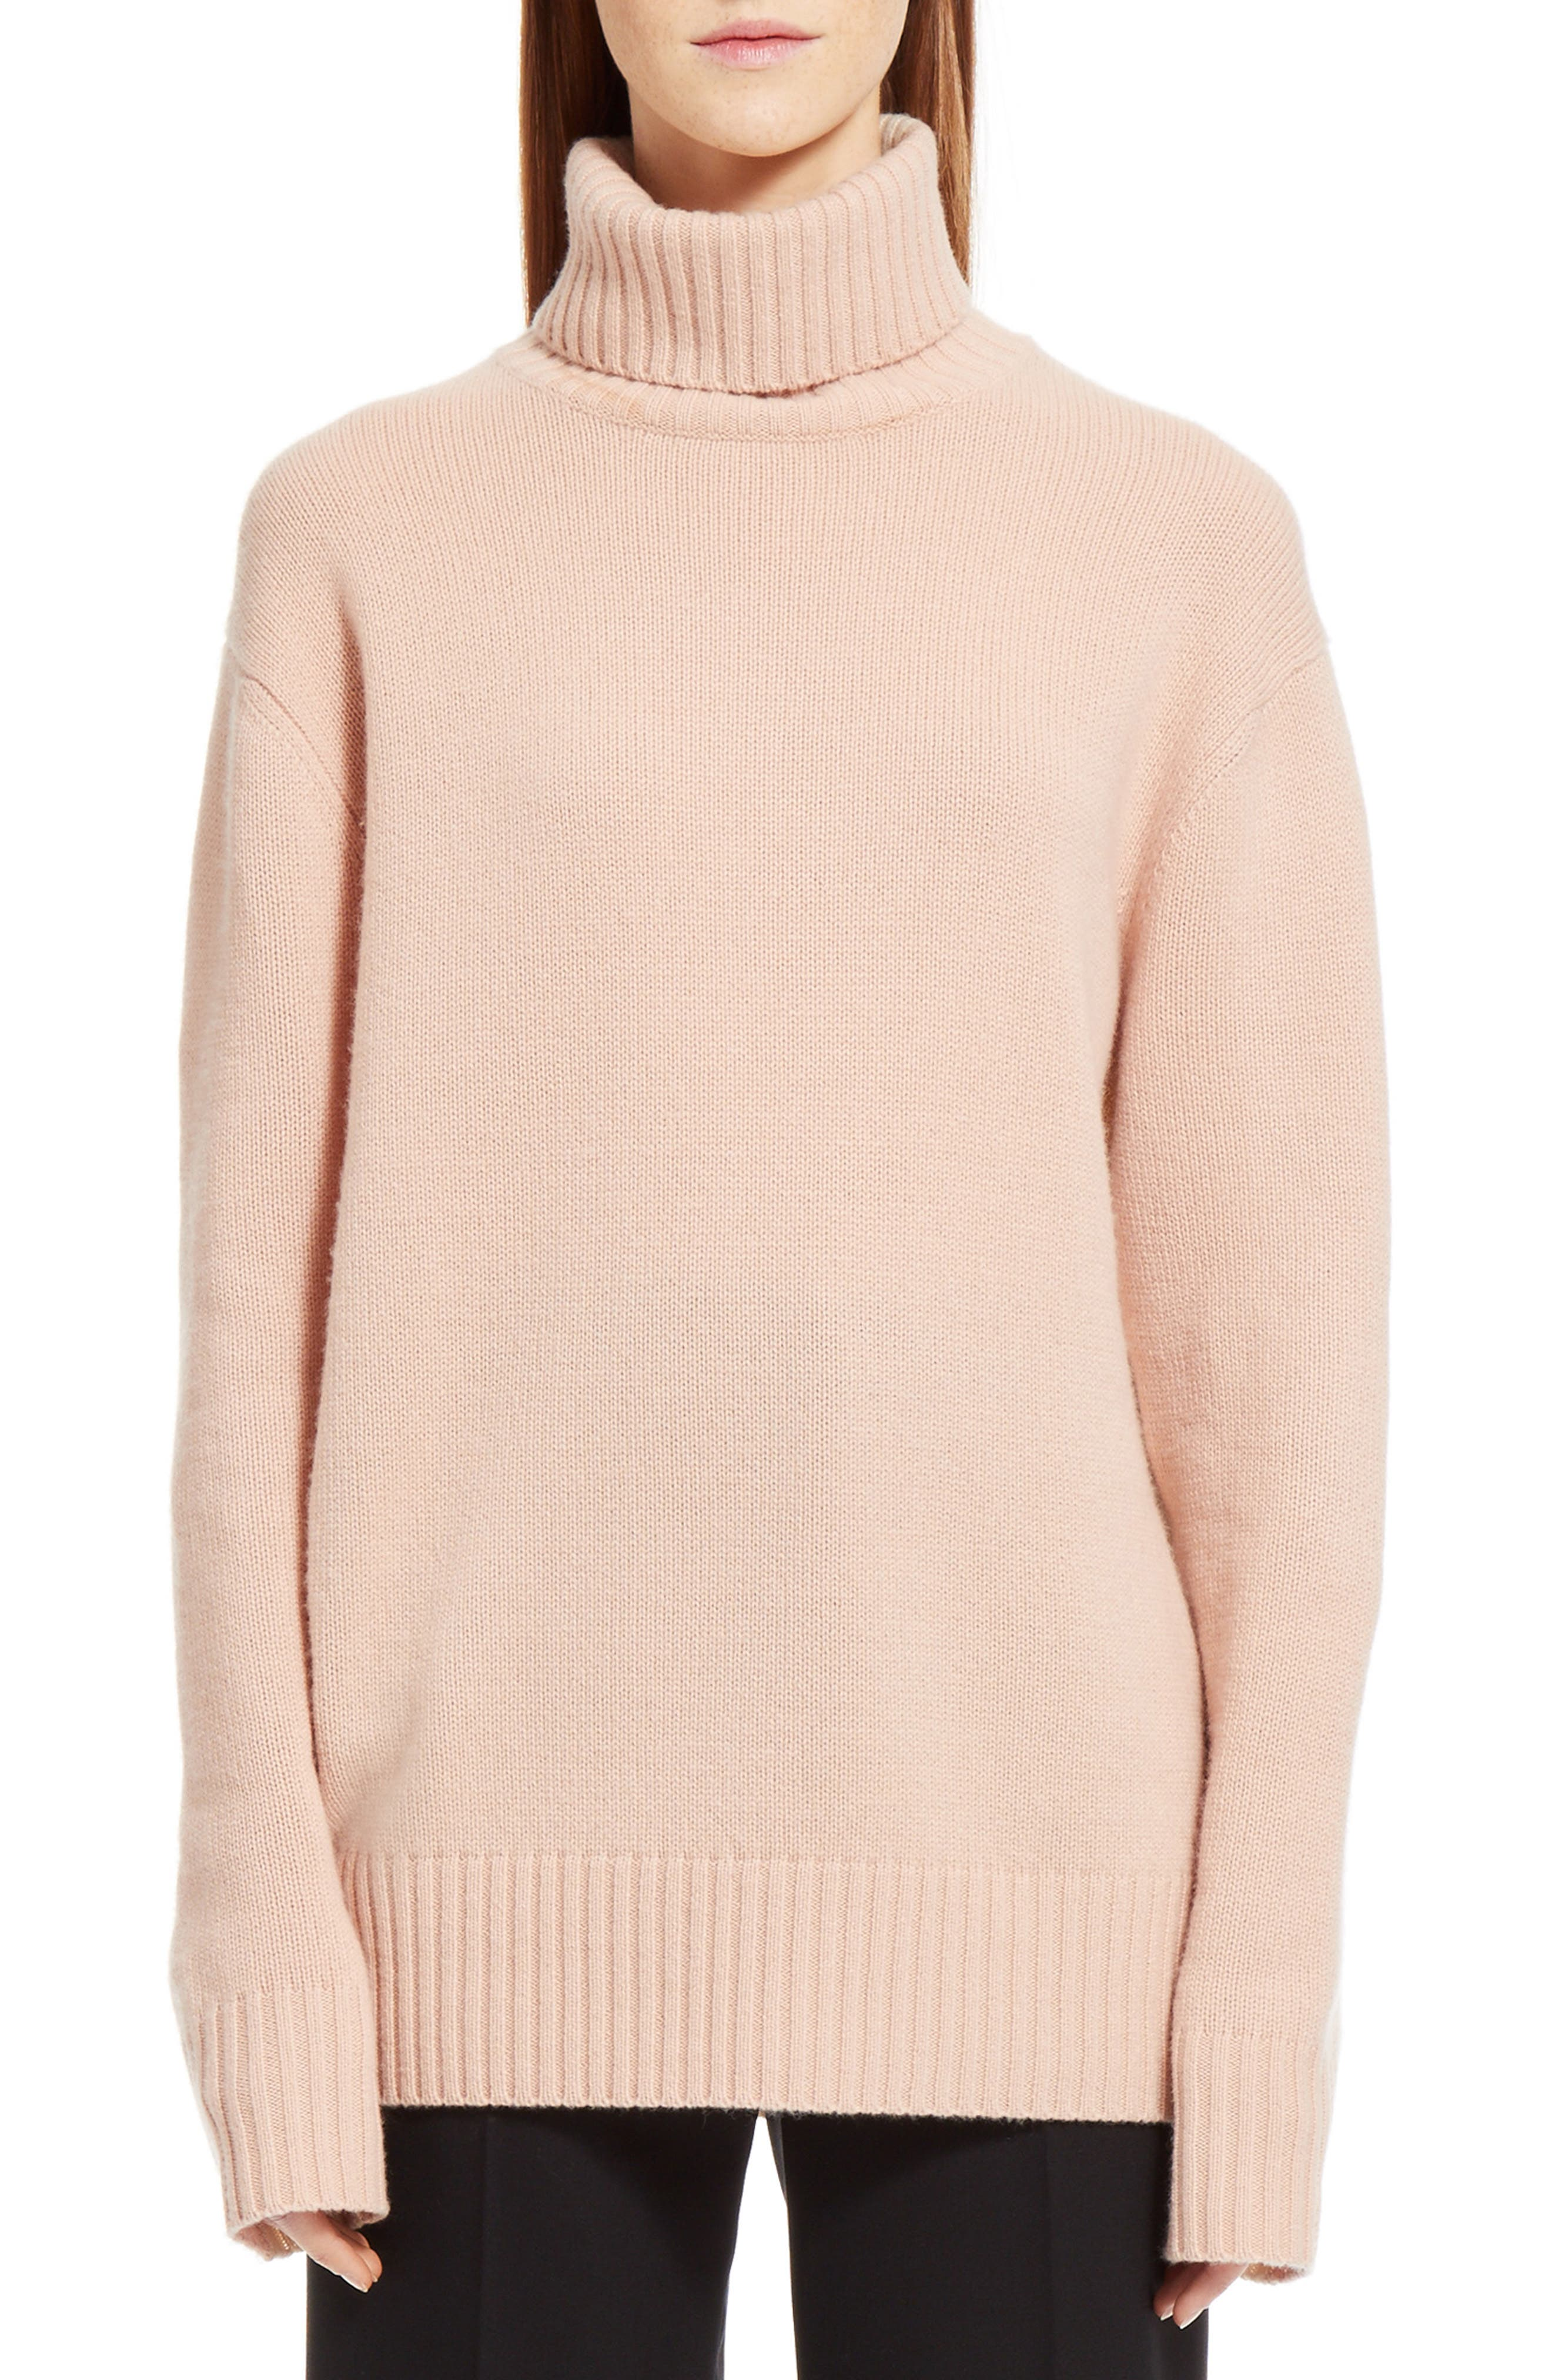 Colorblock Cashmere Turtleneck Sweater,                         Main,                         color, Pink/ Beige